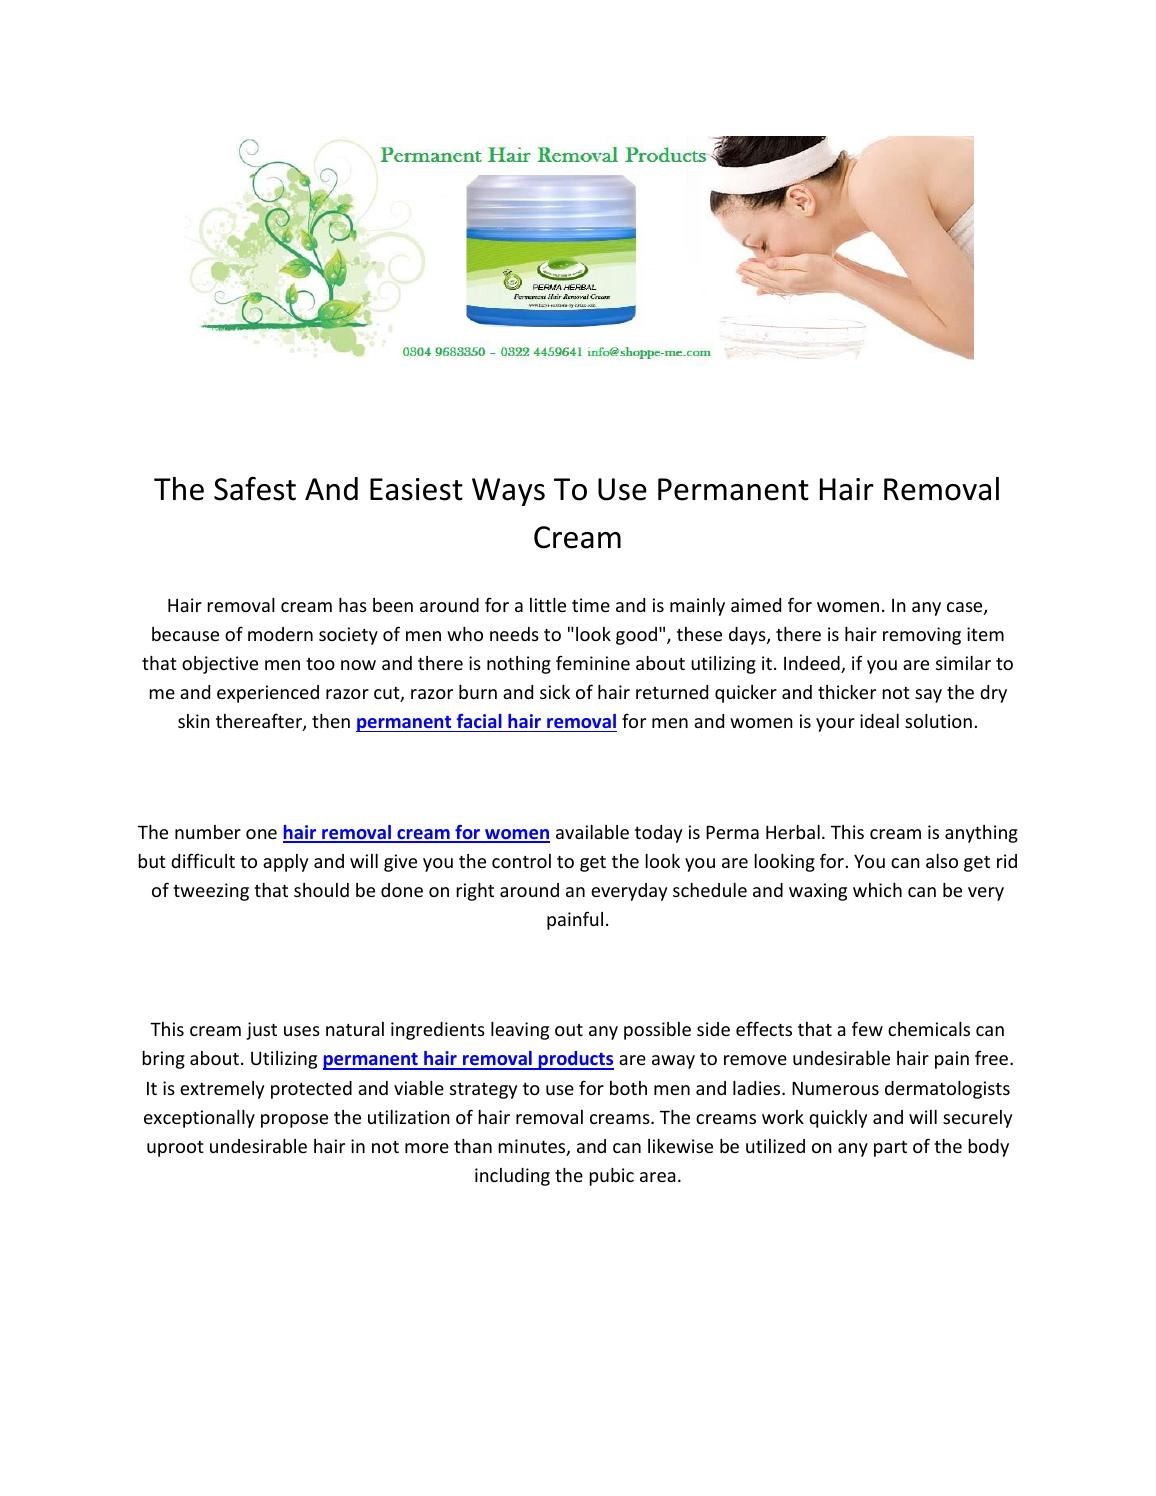 Permanent Hair Removal Cream In Pakistan For Women And Men By